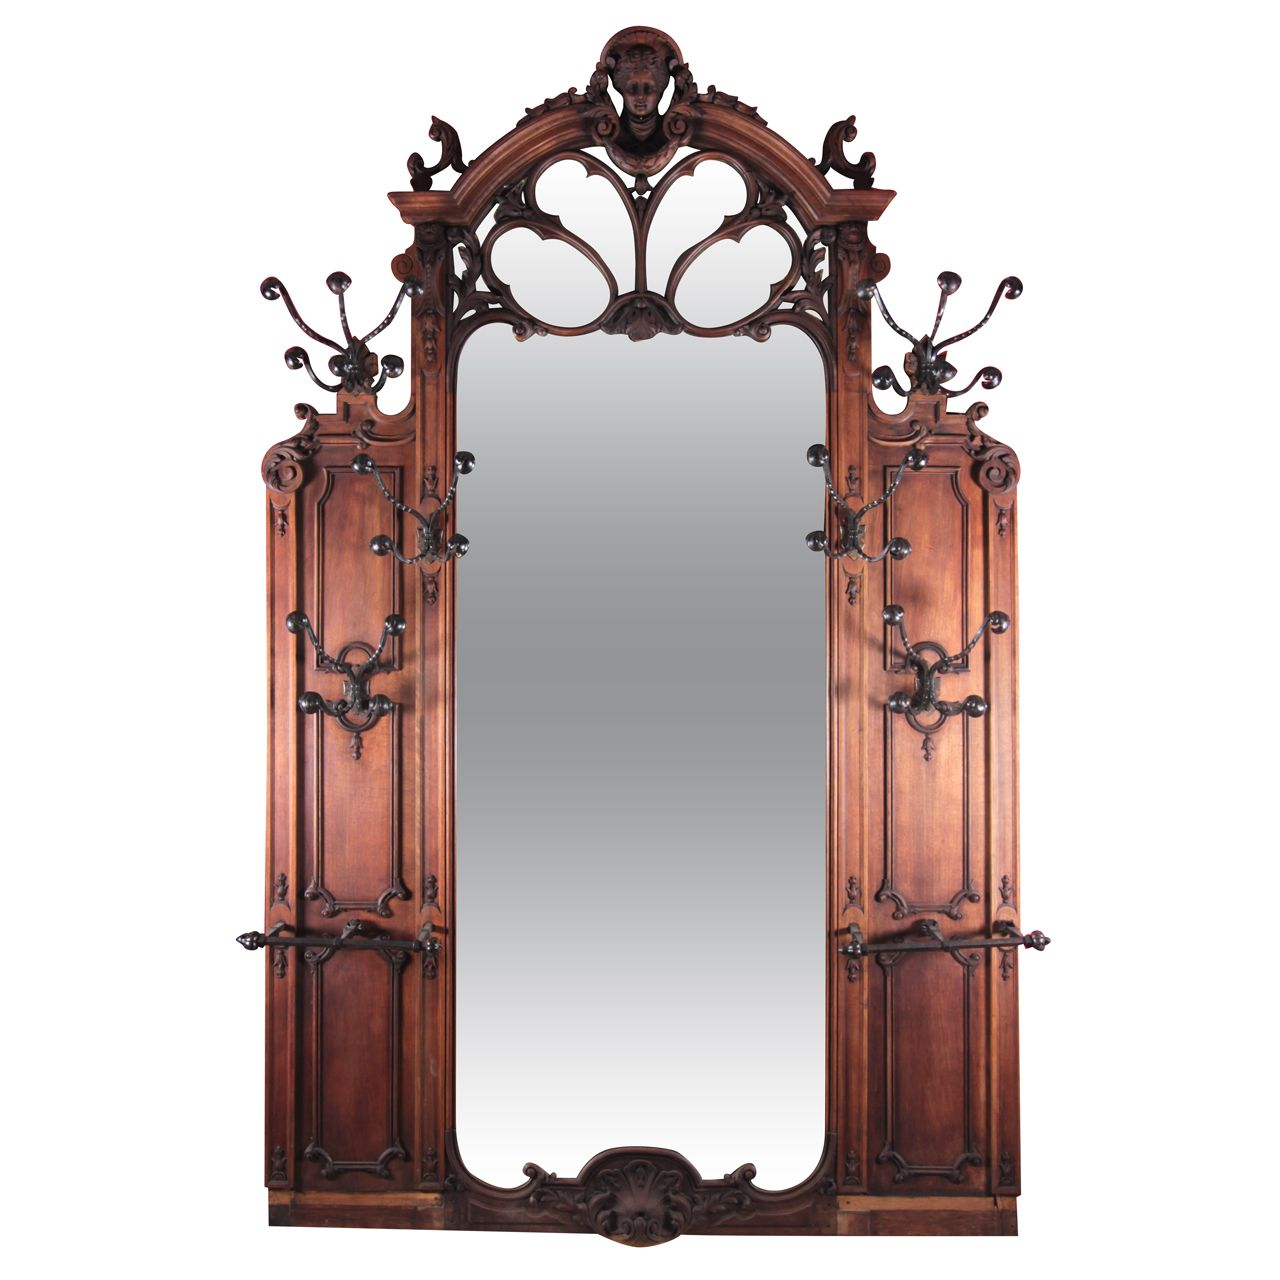 Large Scale Art Nouveau Wooden Hall Tree Mirror  